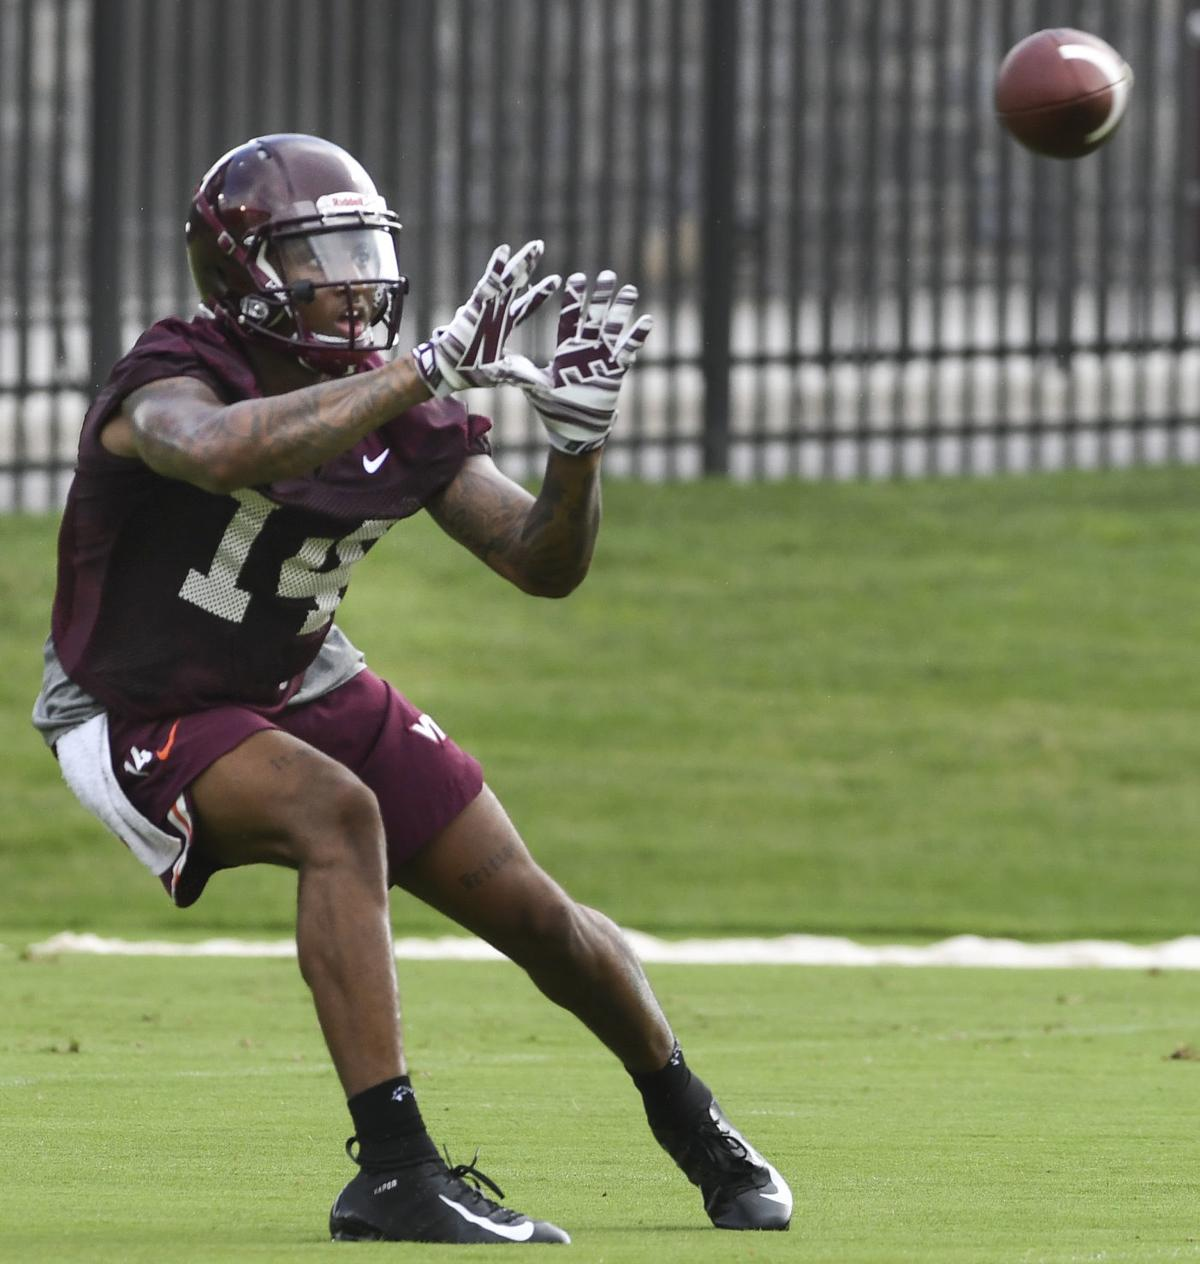 virginia tech football newcomer hazelton excited to see game action